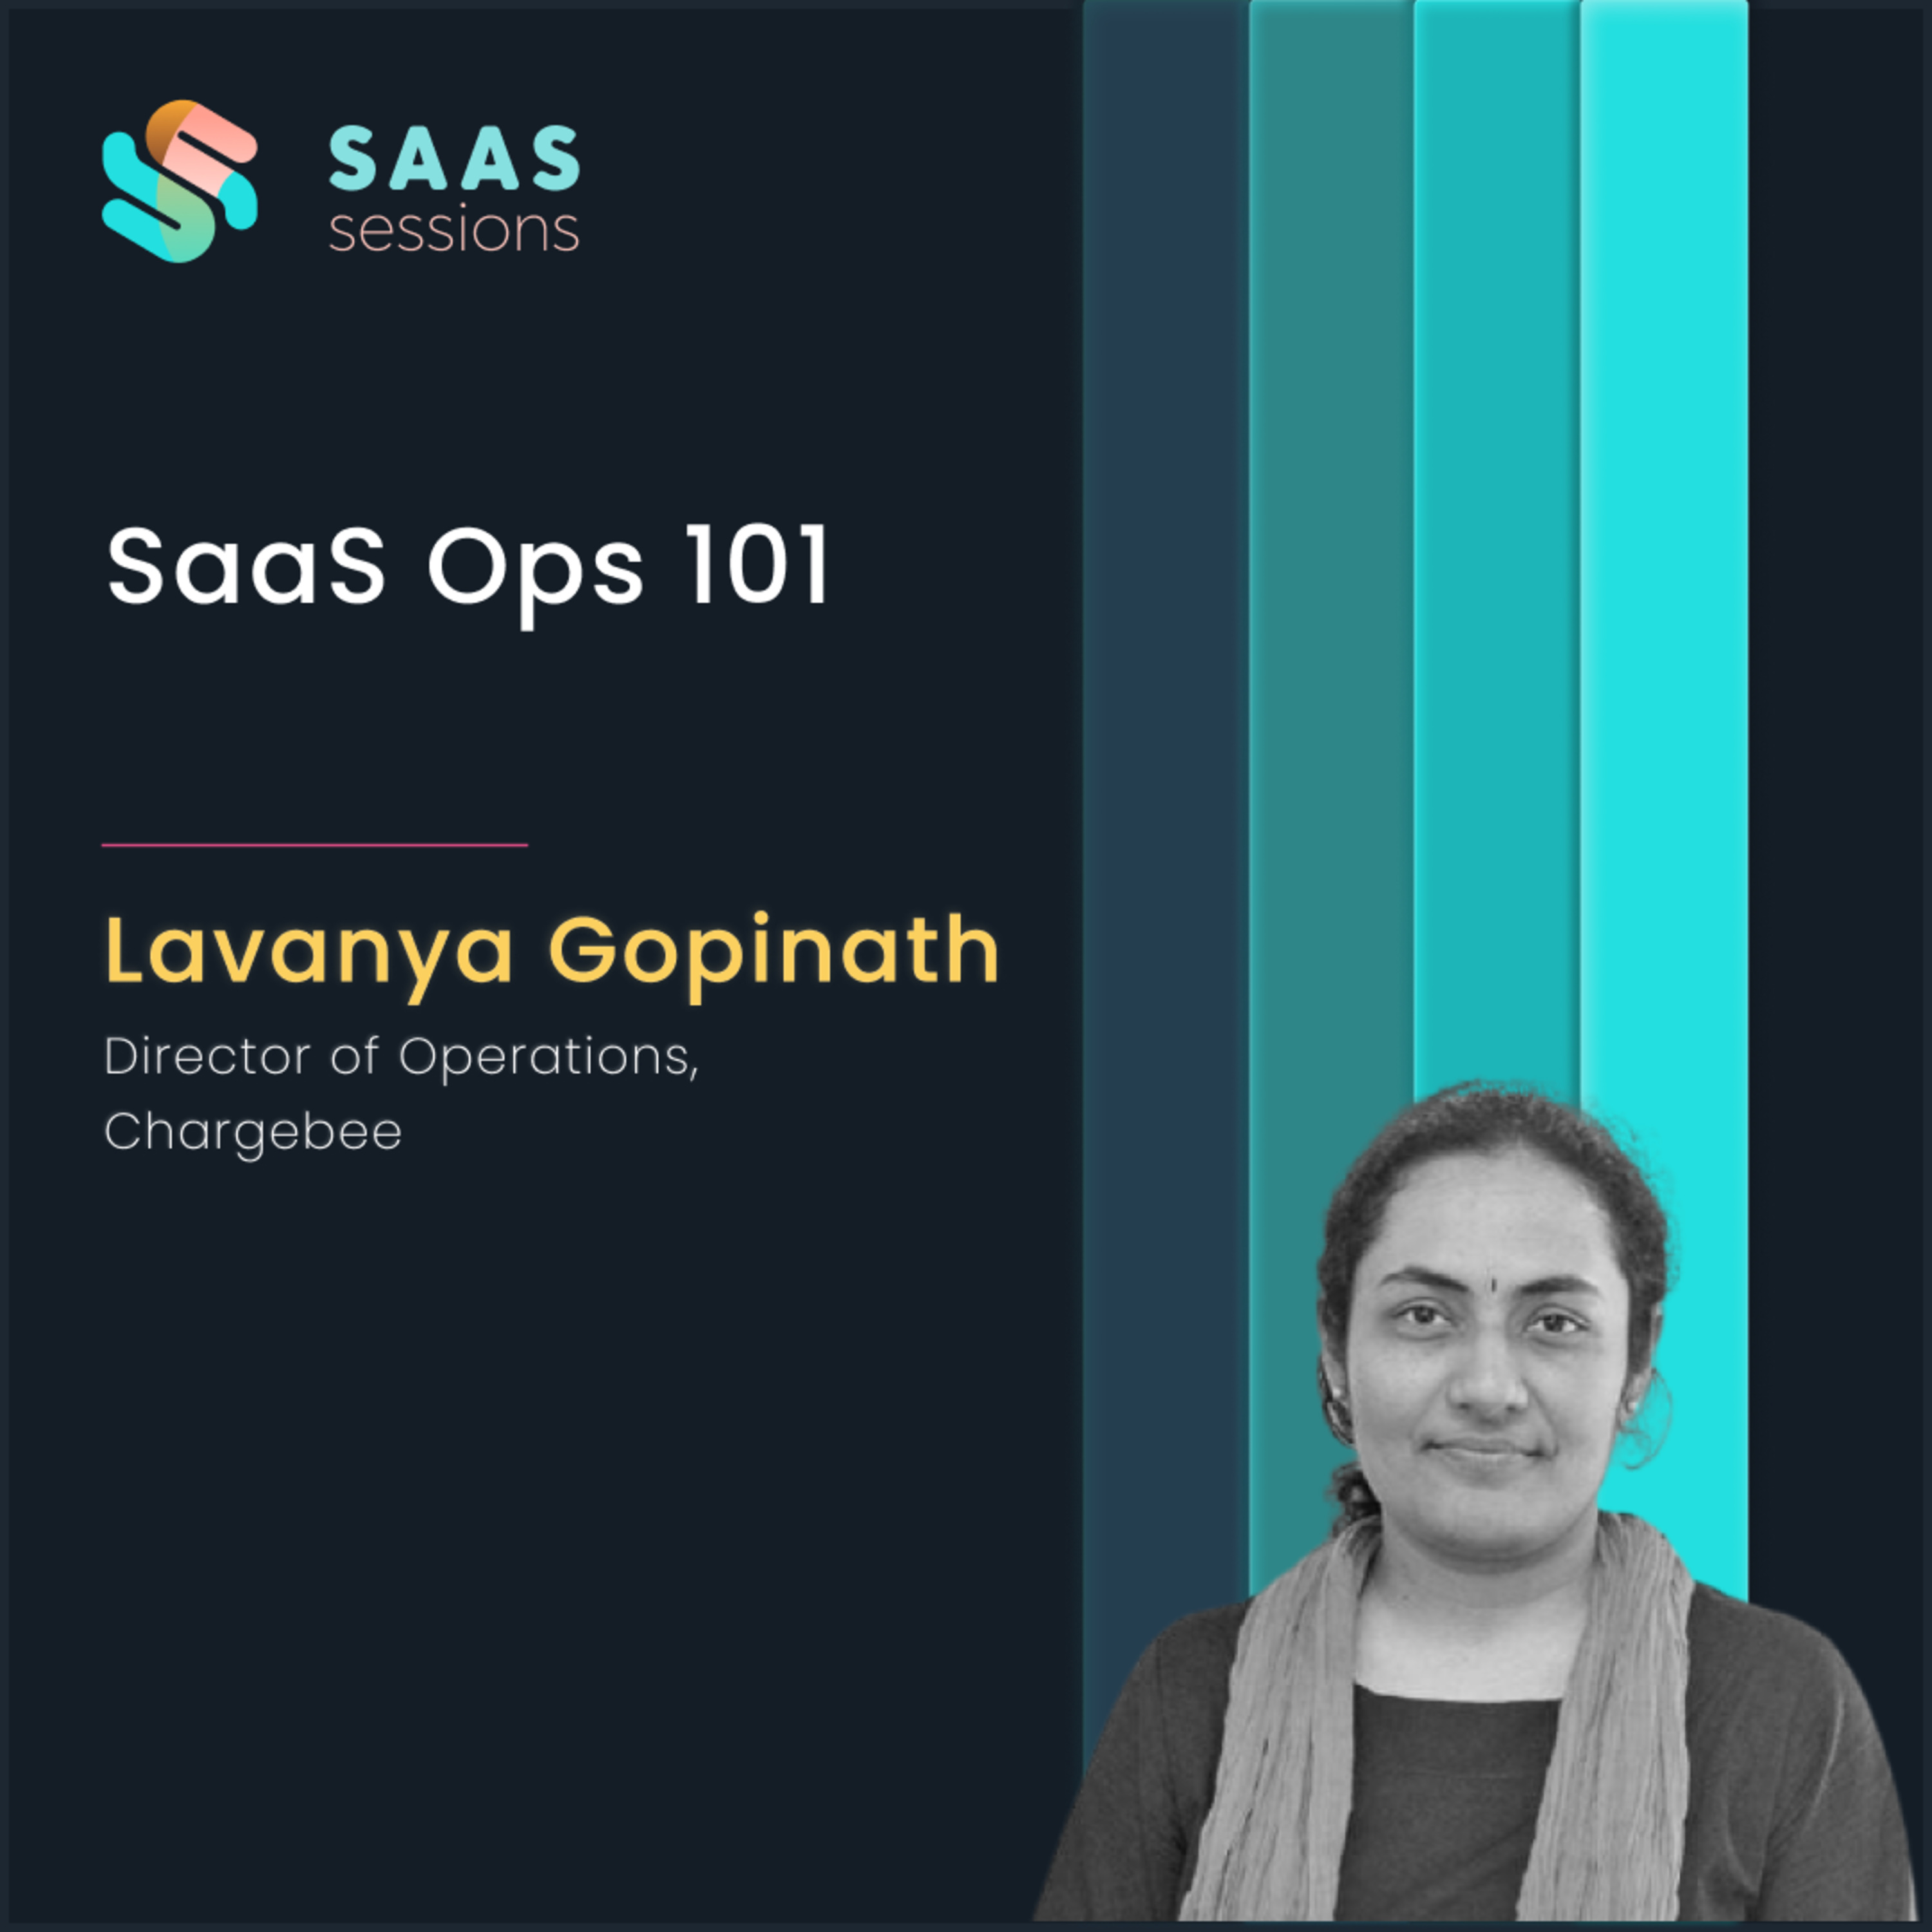 SaaS Ops 101 ft. Lavanya Gopinath, Director of Operations at Chargebee